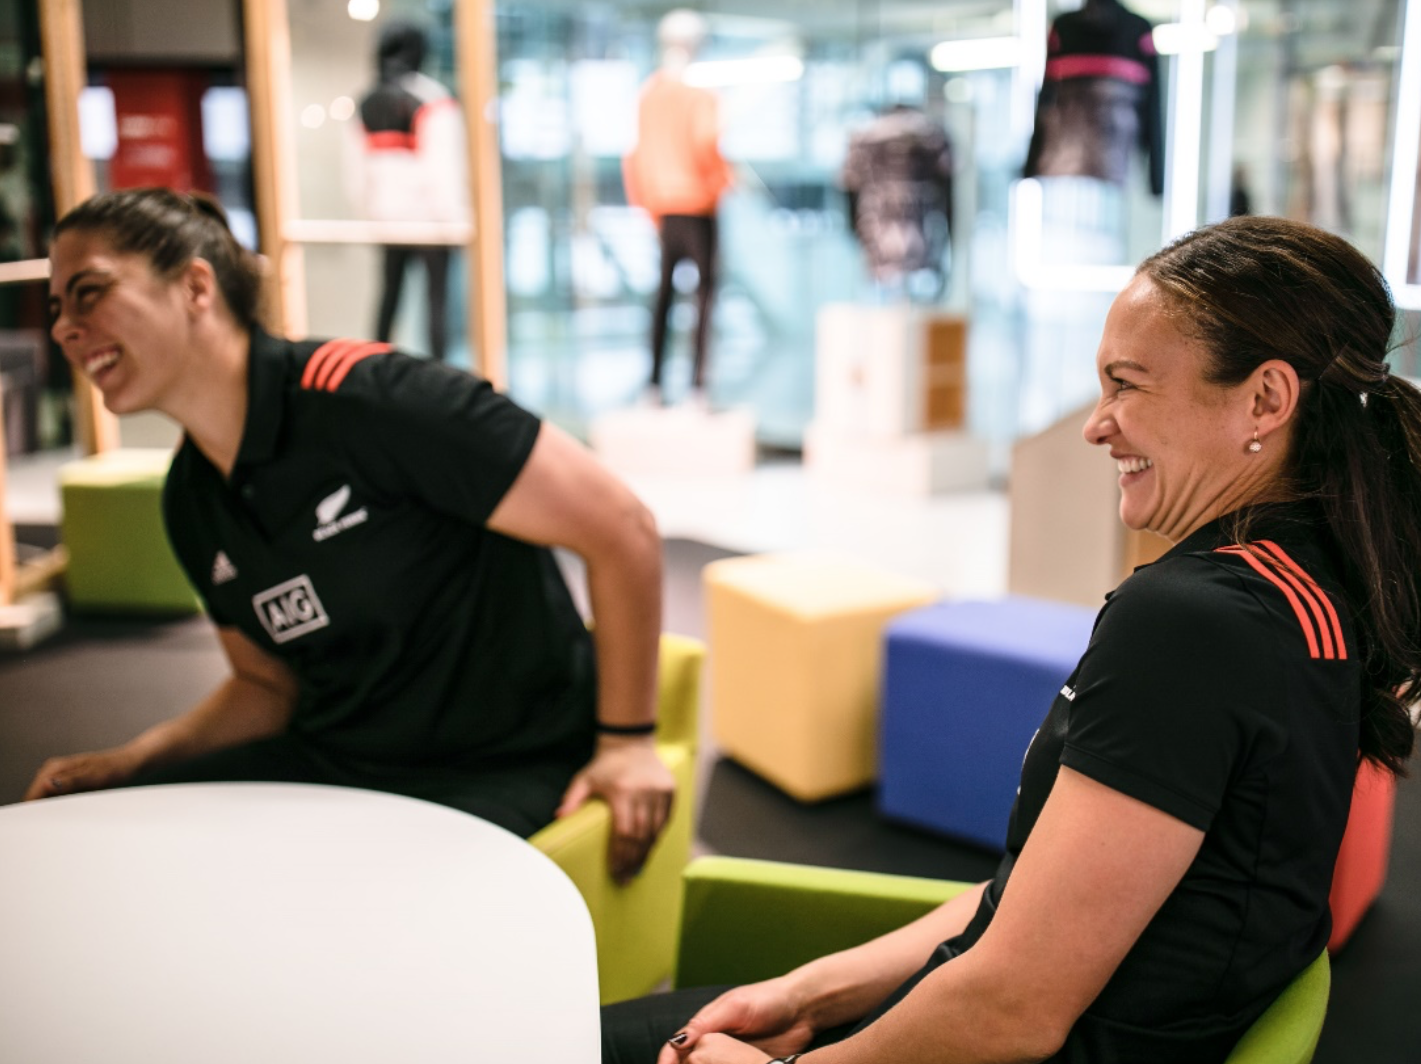 Les Elder and Eloise Blackwell from the women's rugby team Black Ferns having fun during an interview with GamePlan A